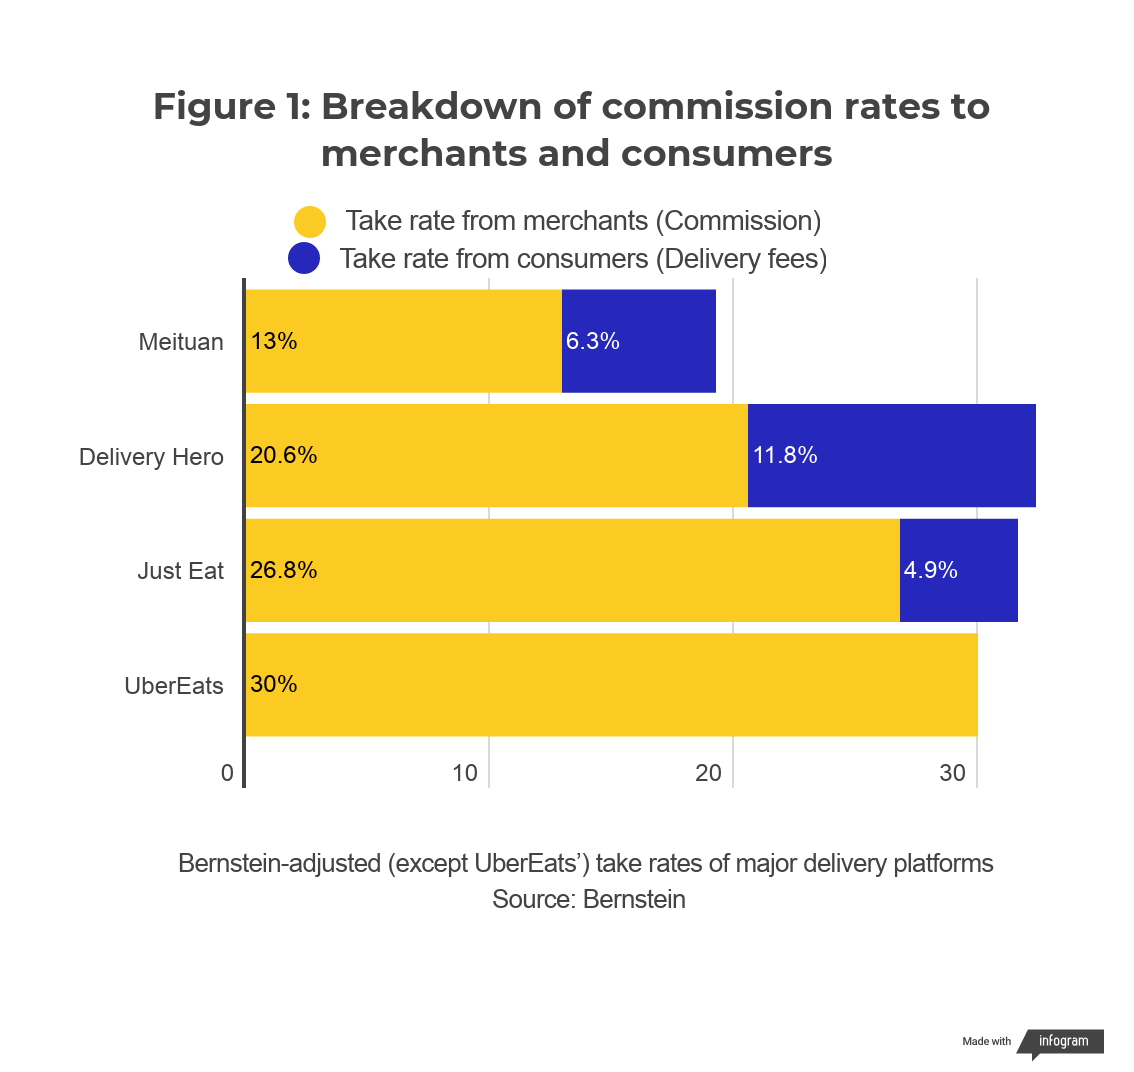 Breakdown of commission rates to merchants and consumers